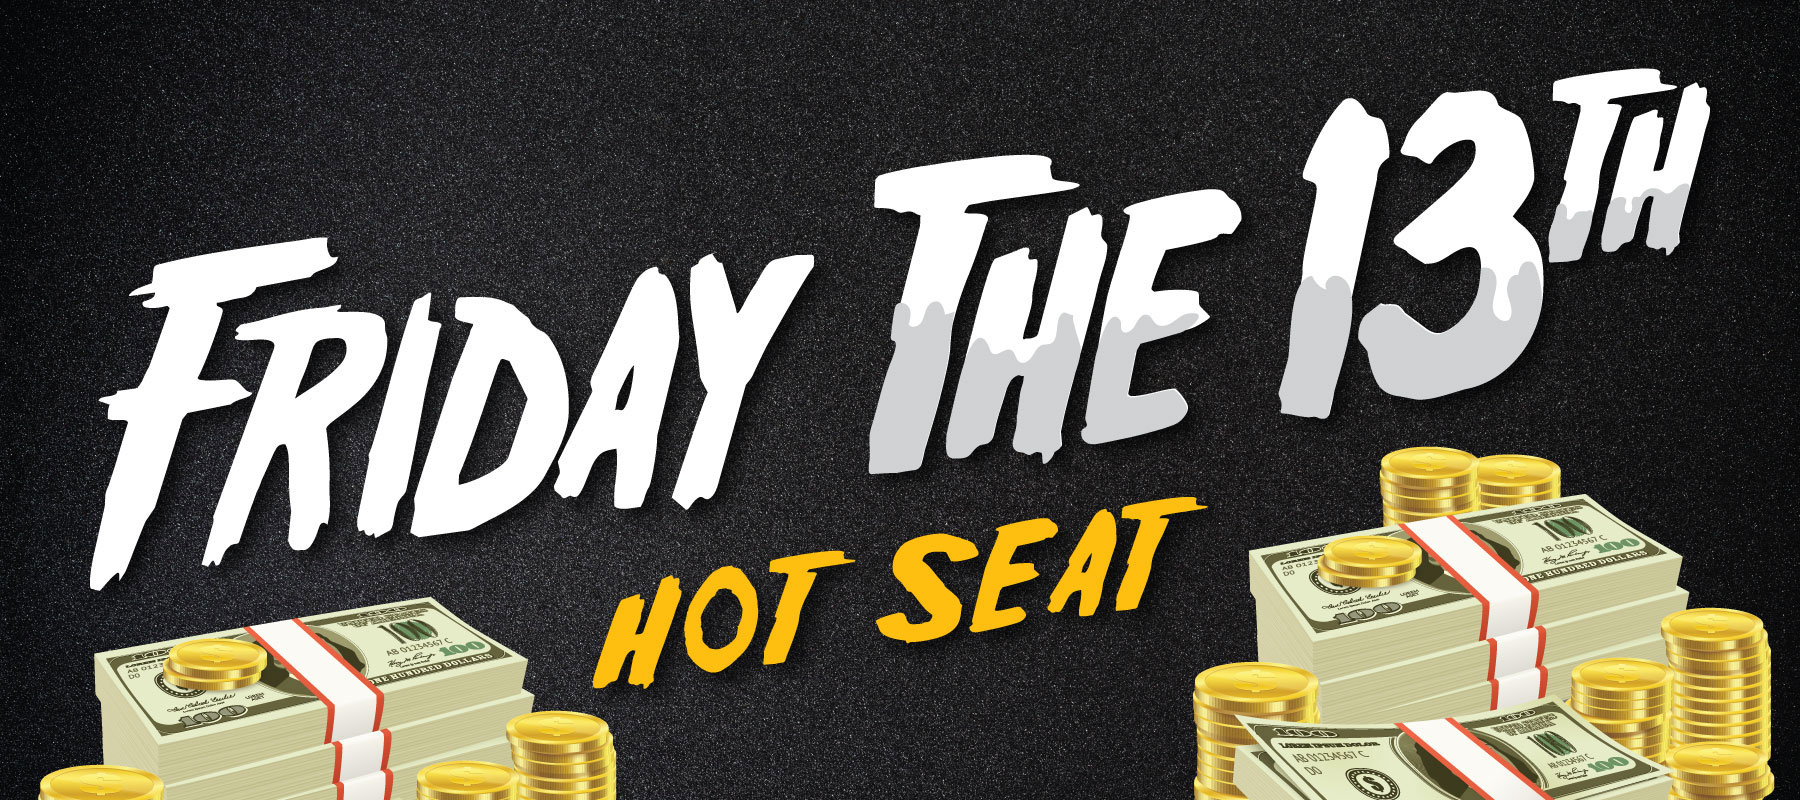 Friday the 13th Hot Seat